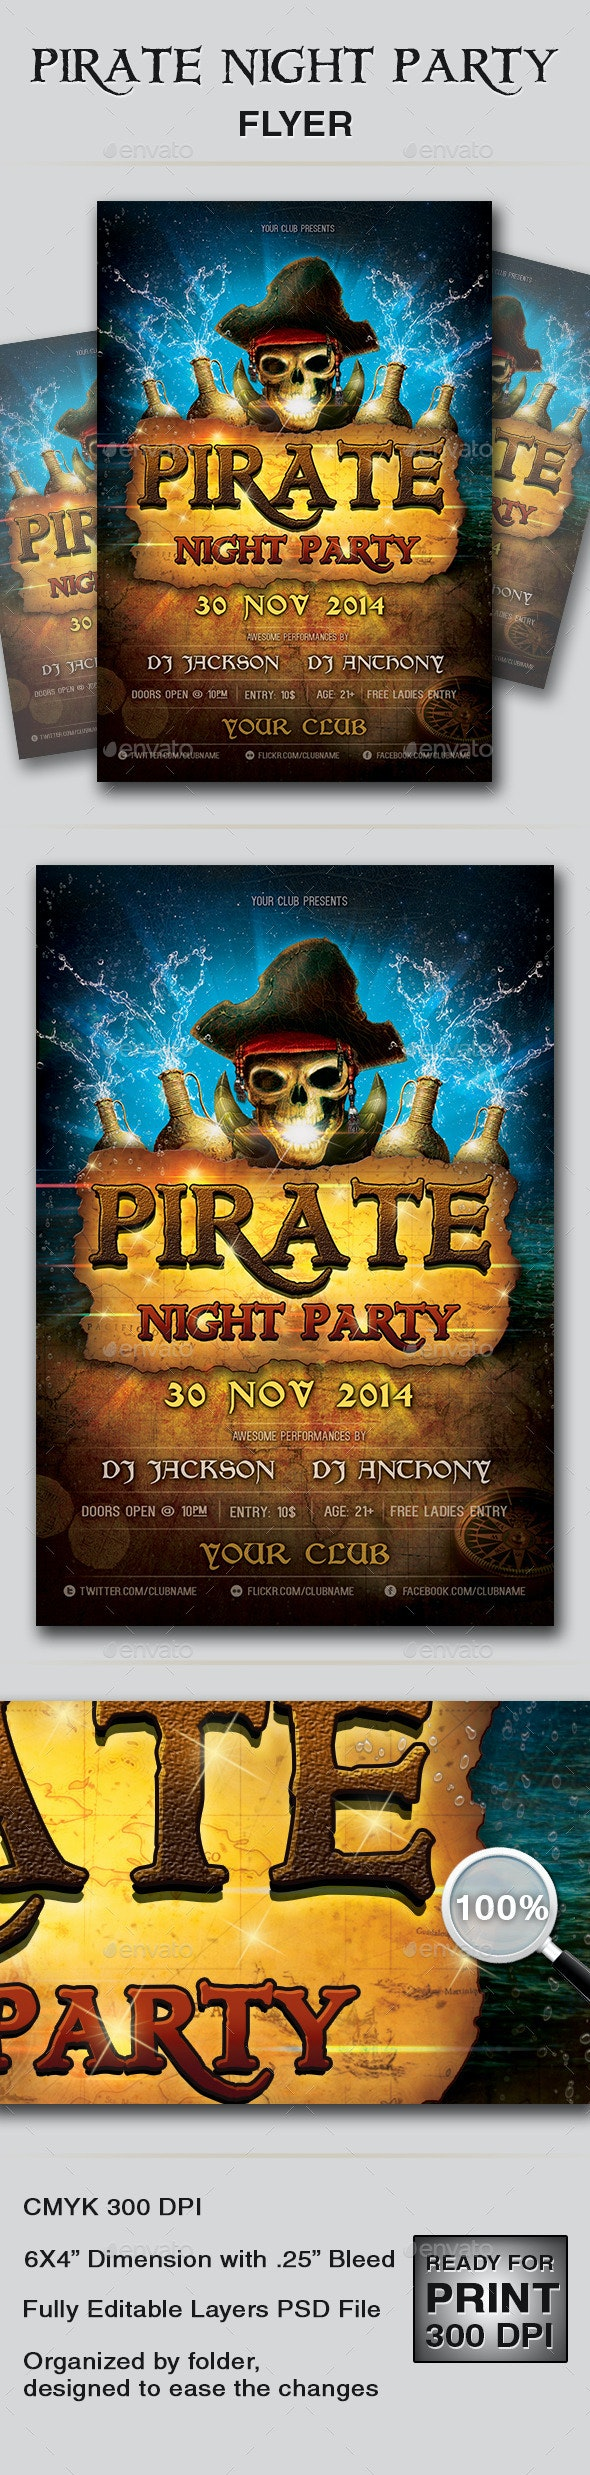 Pirate Night Party Flyer - Events Flyers